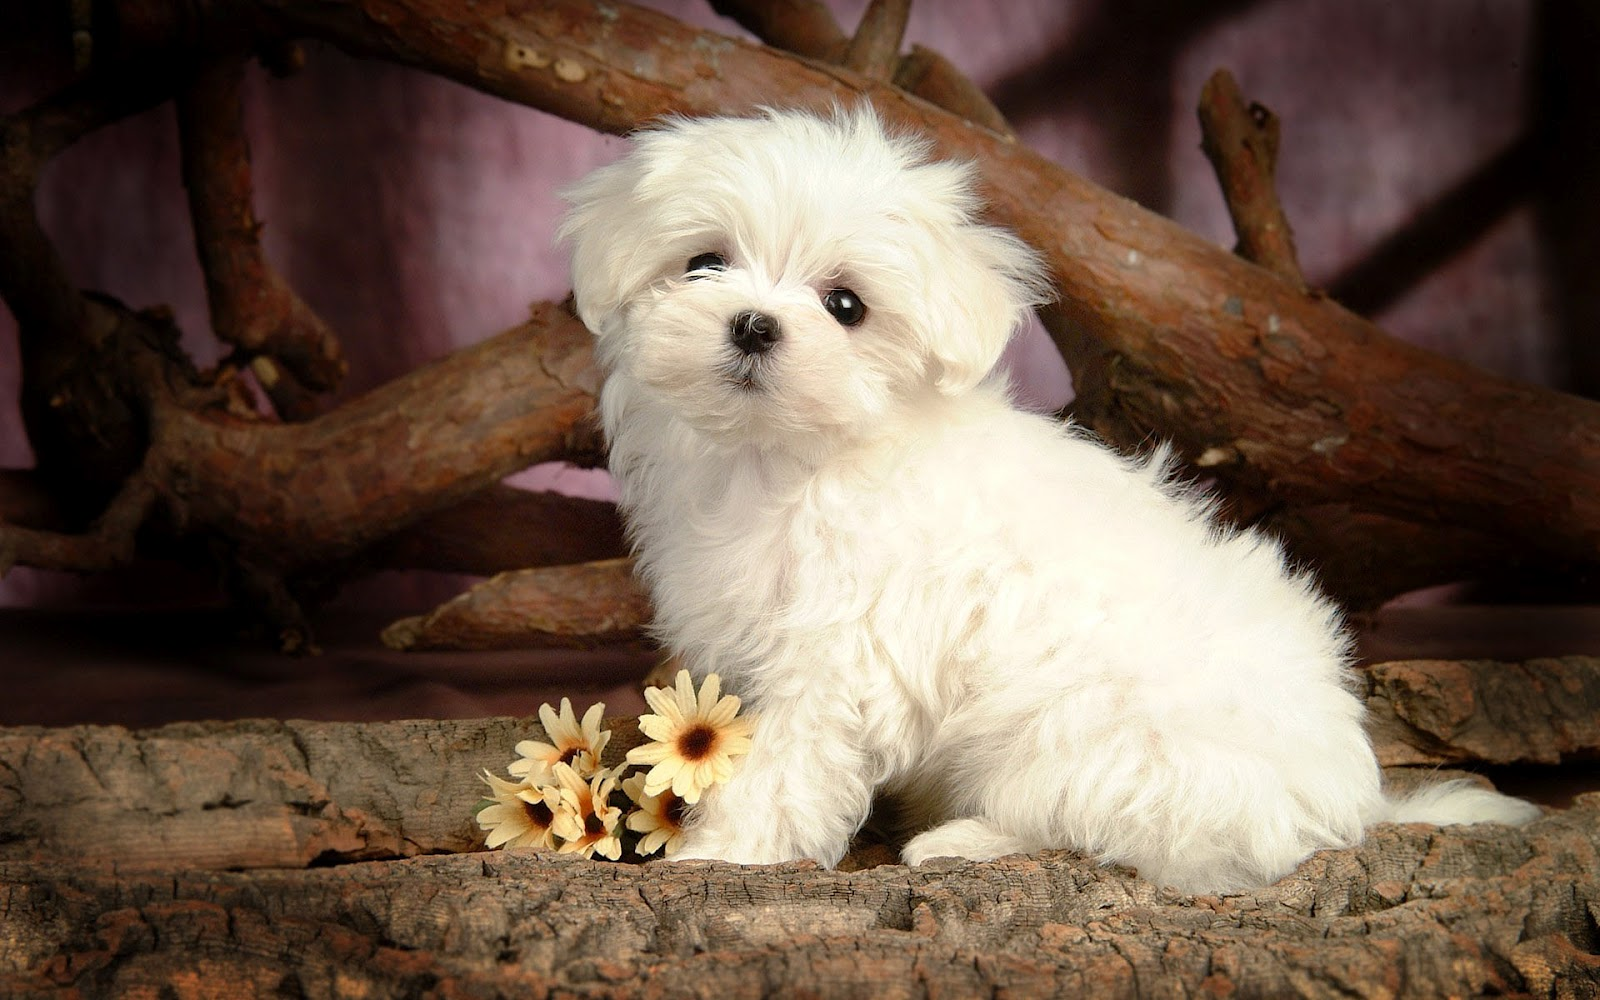 HD animal wallpaper with a cute little maltese dog wallpaper  HD dogs